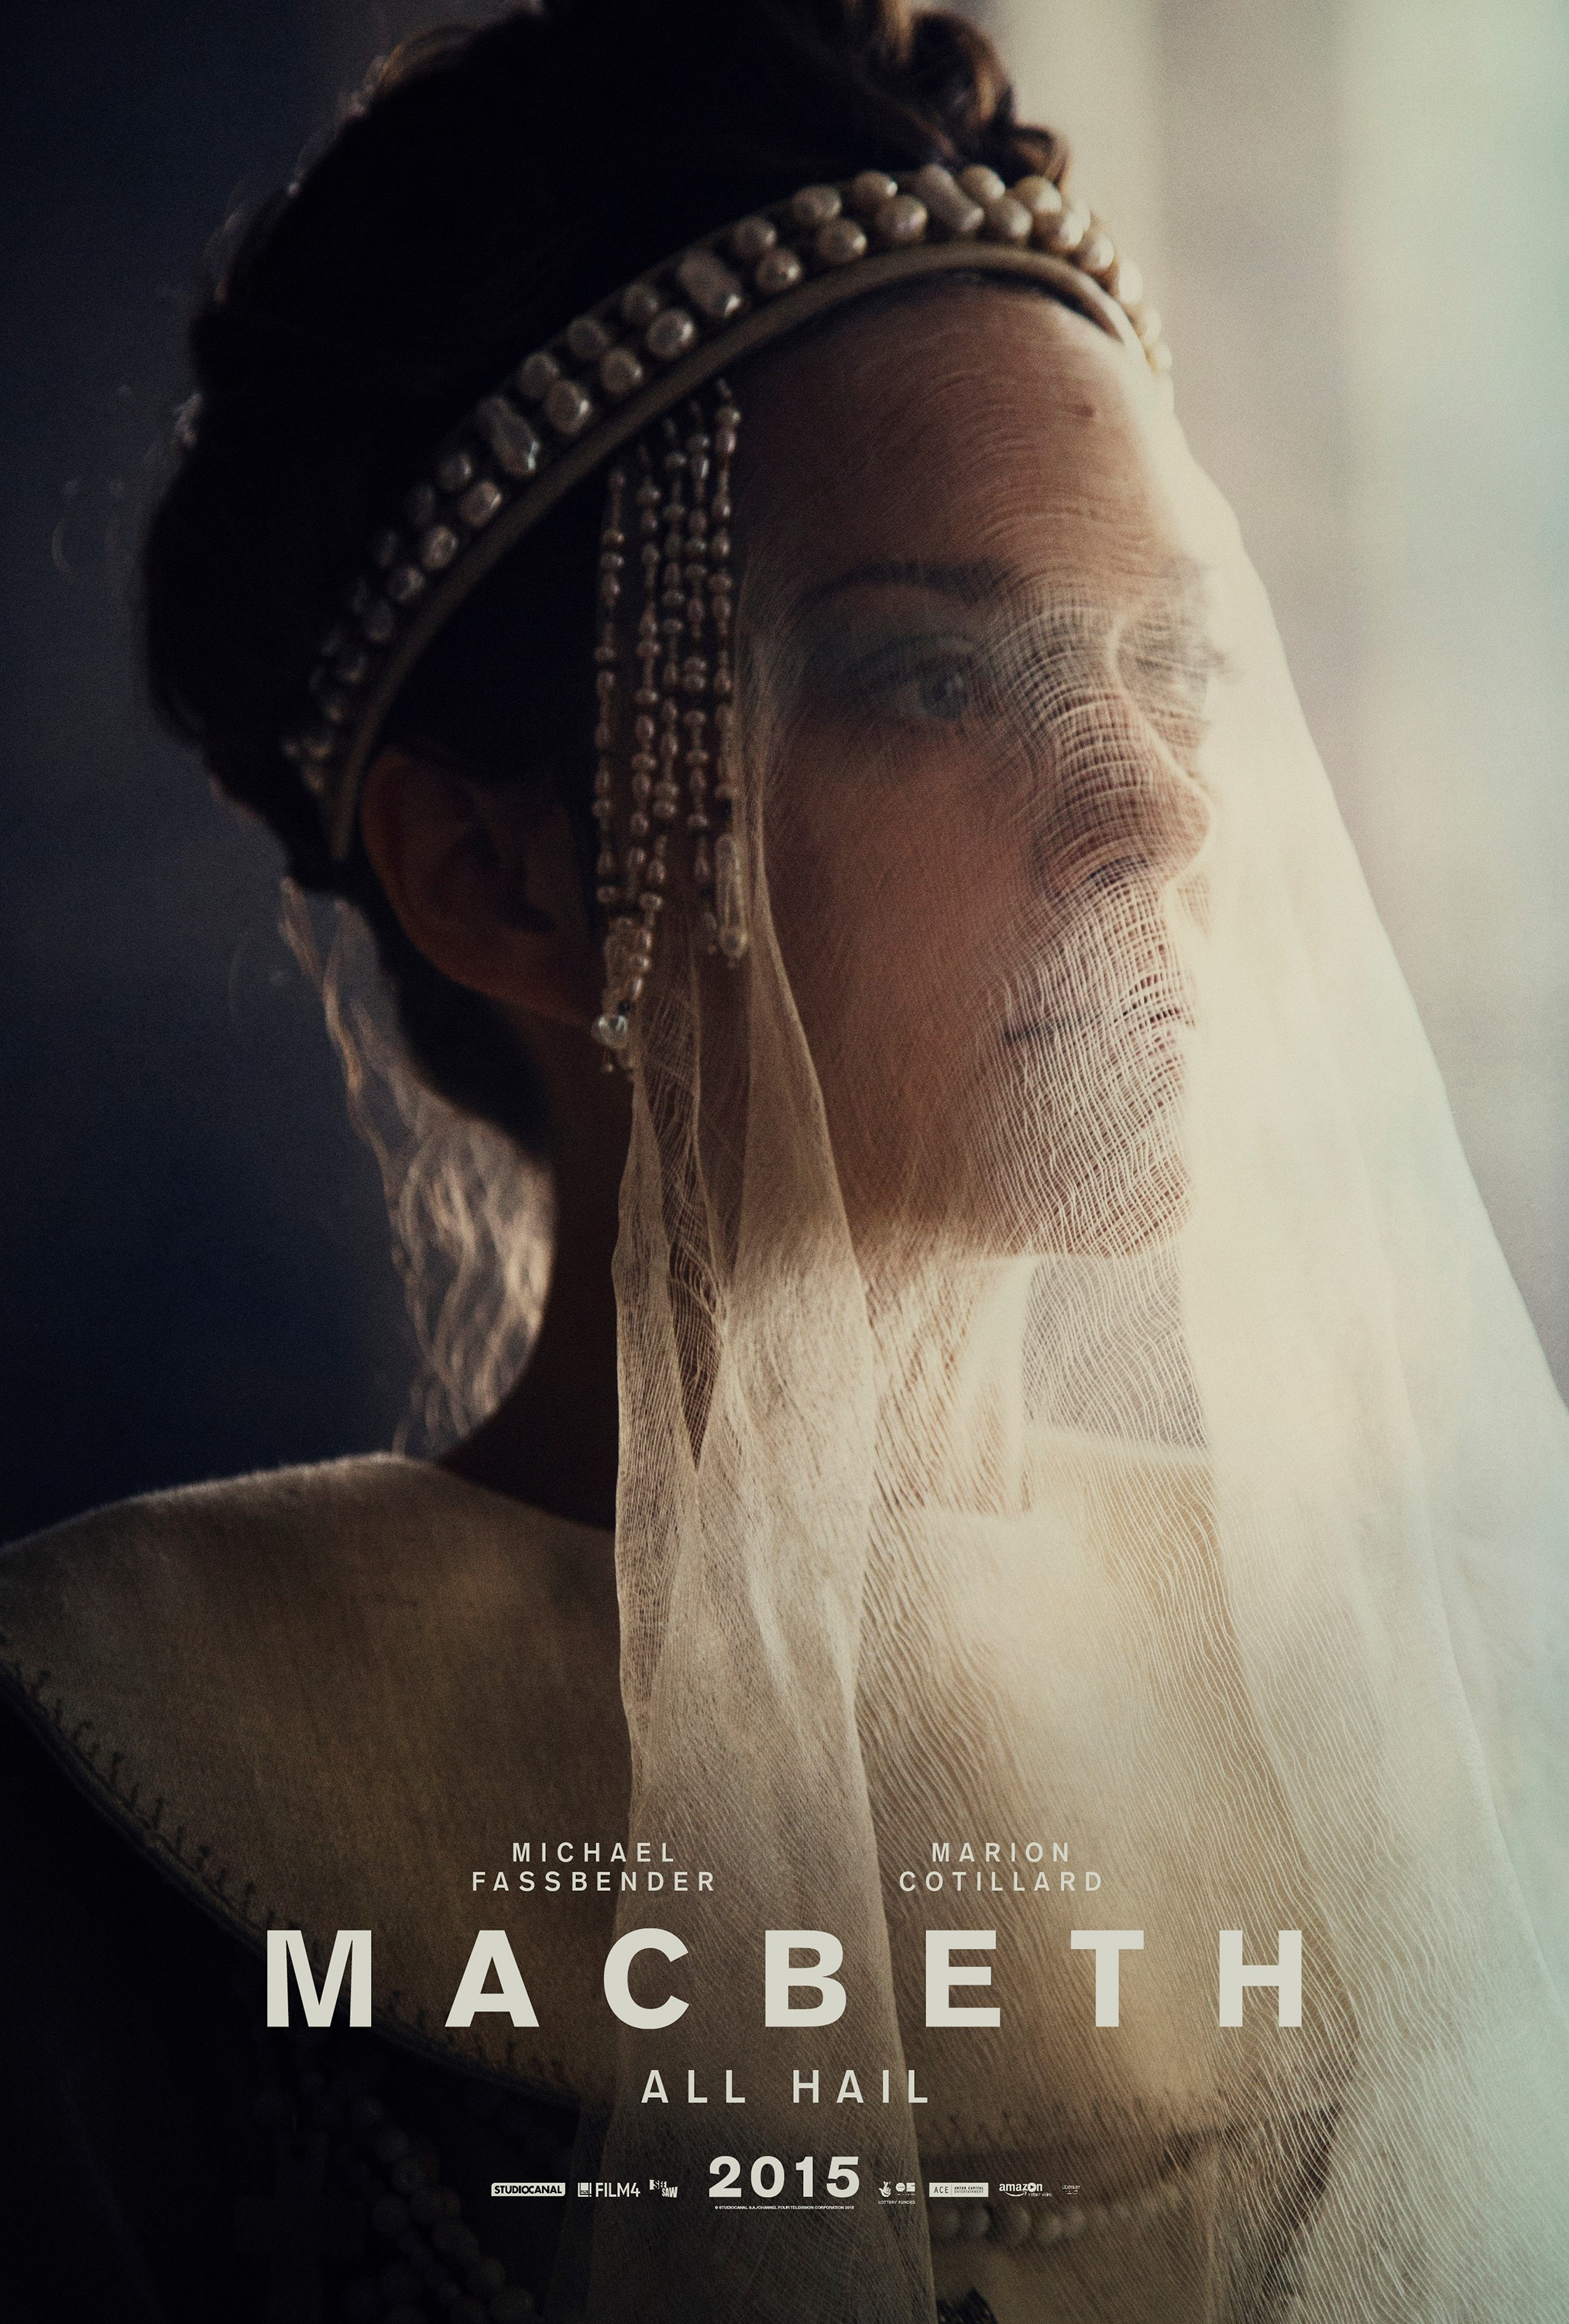 the role of lady macbeth and the witches in macbeth Lady macbeth can be considered the fourth witch in macbeth to a great extent firstly, lady macbeth is wicked she calls upon thick night and pall thee in the.